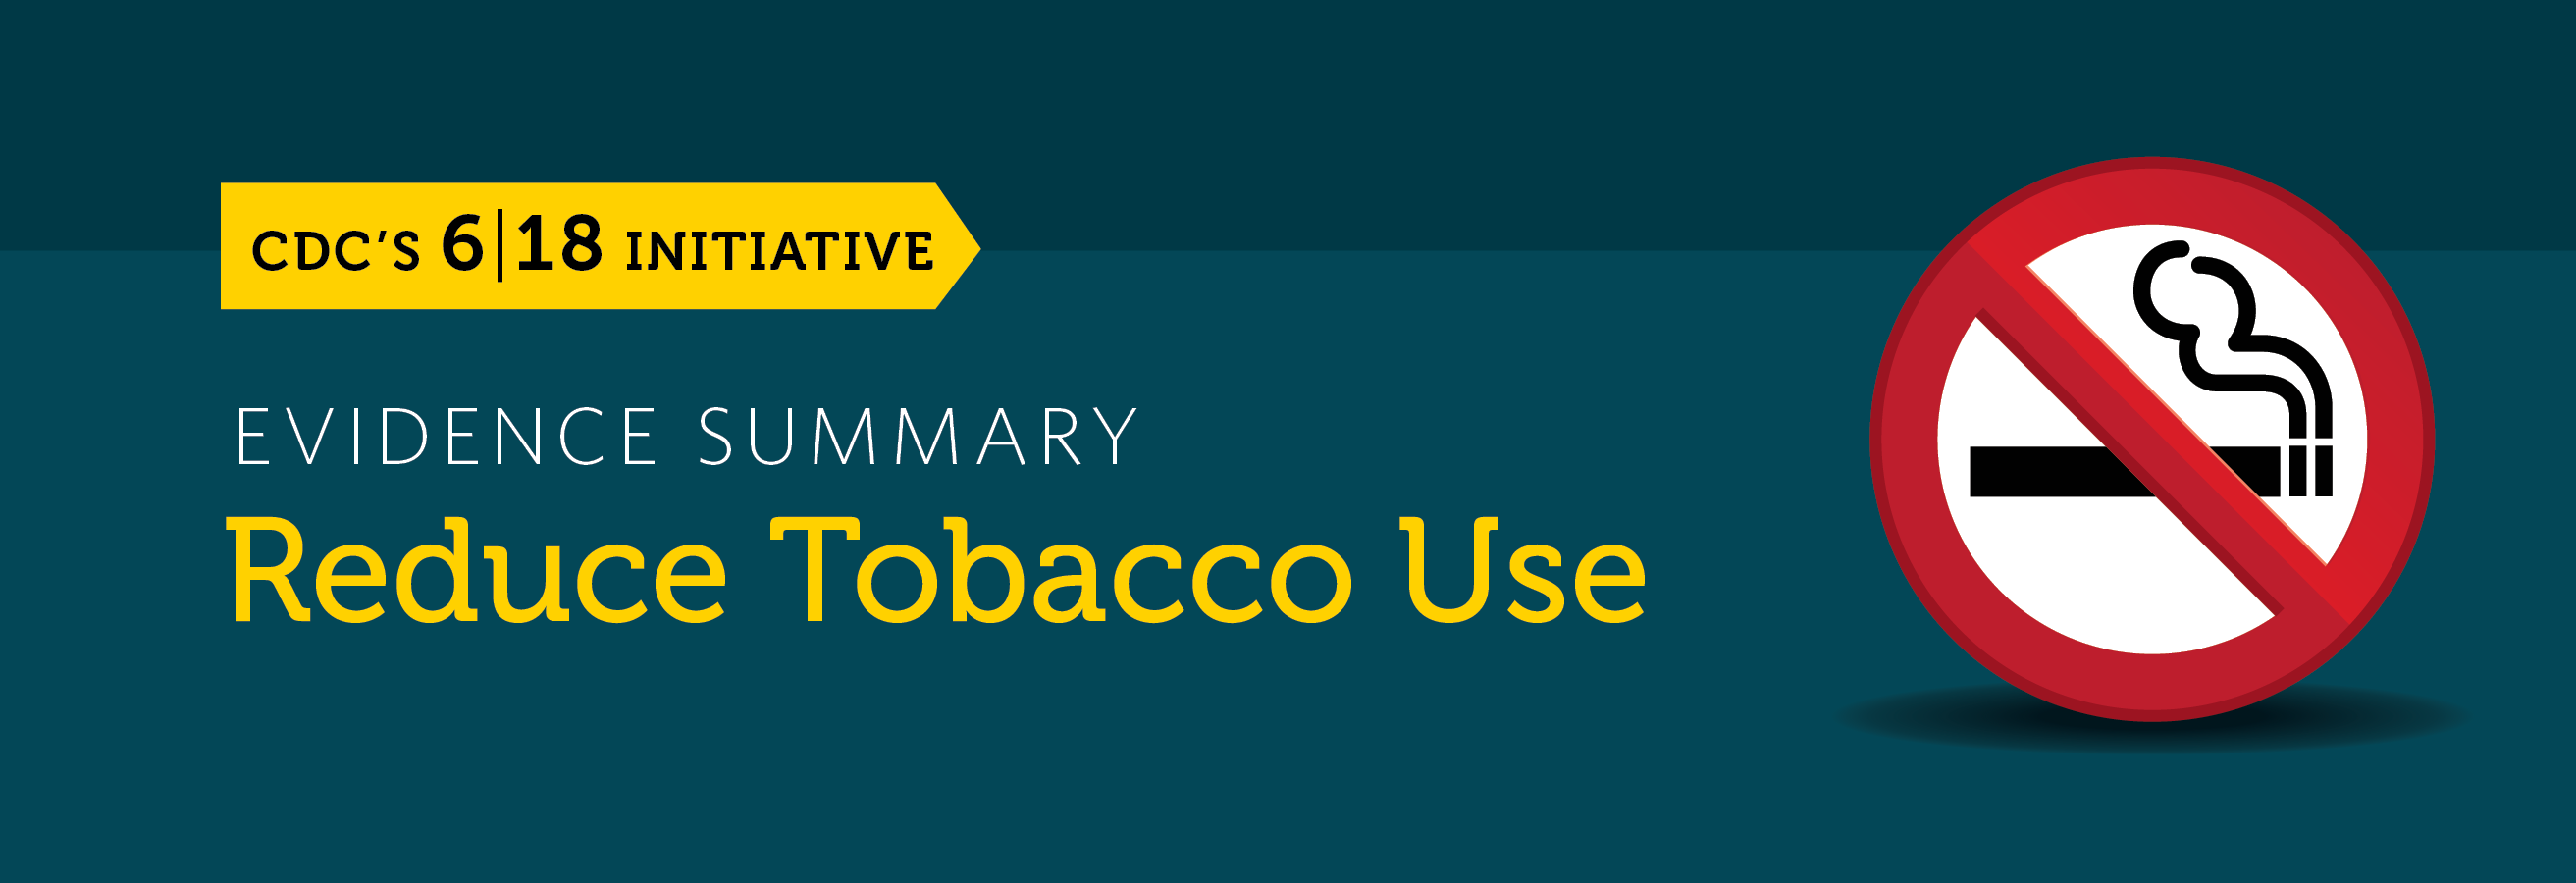 The reduce tobacco use evidence summary banner.